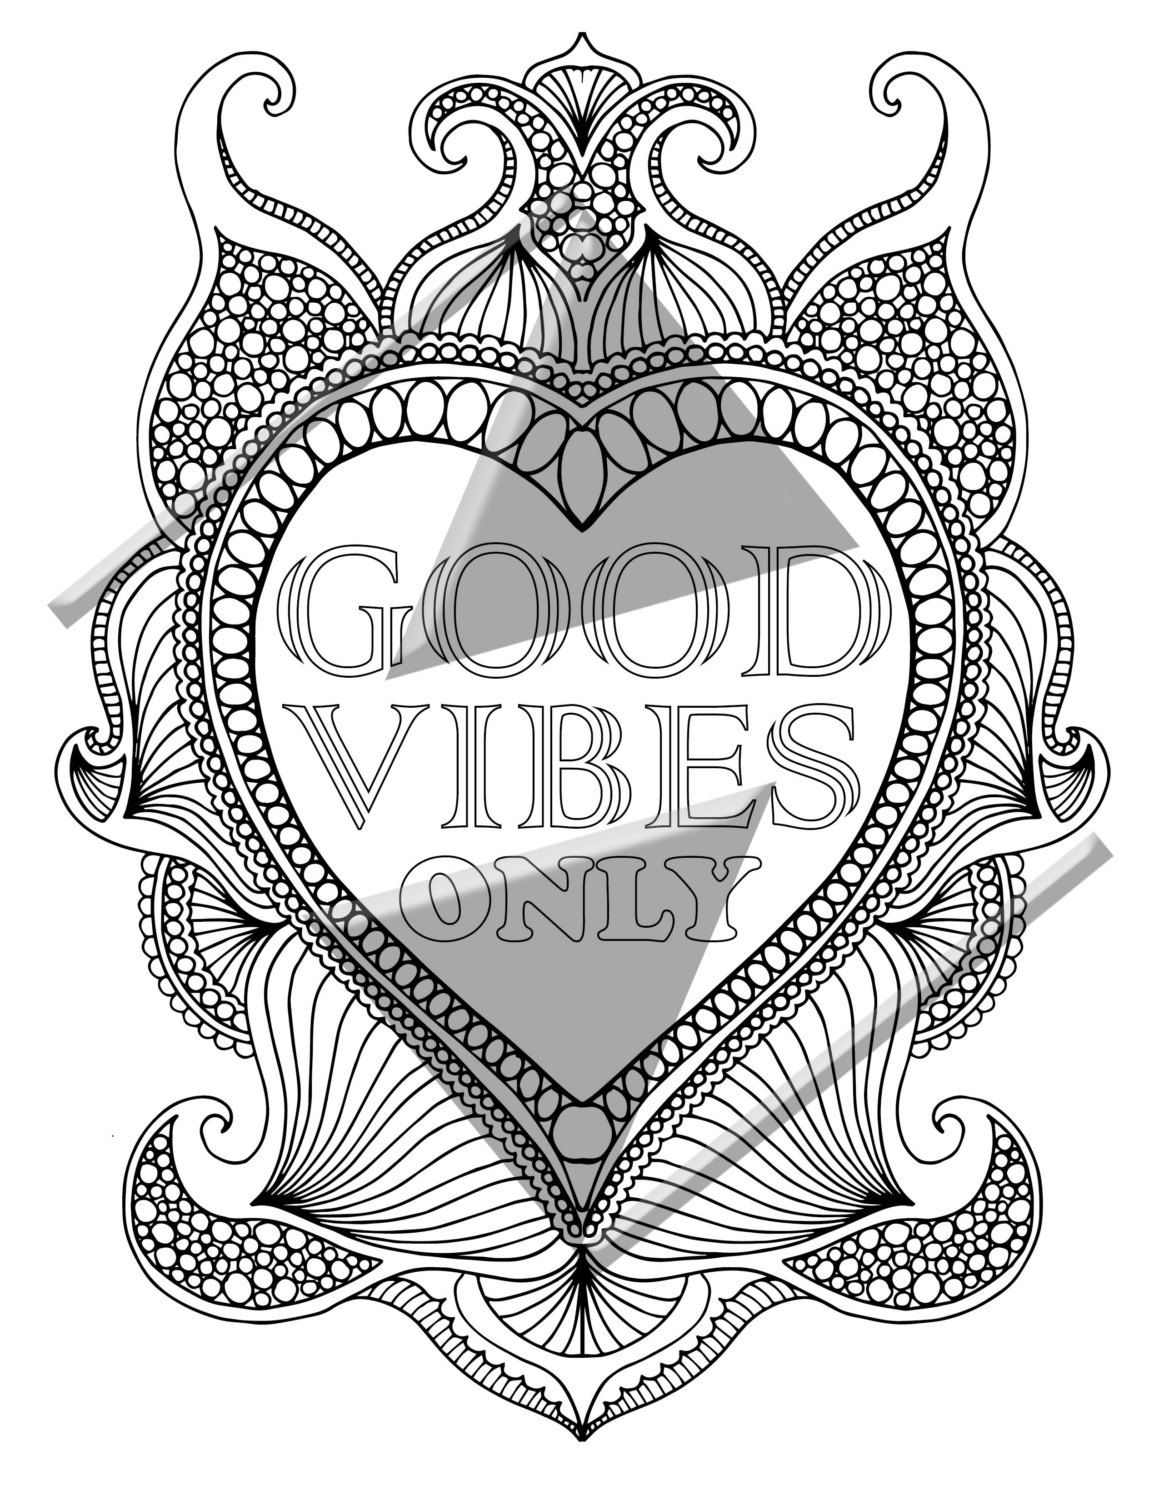 Adult coloring pages, Coloring pages, Quote coloring pages ...